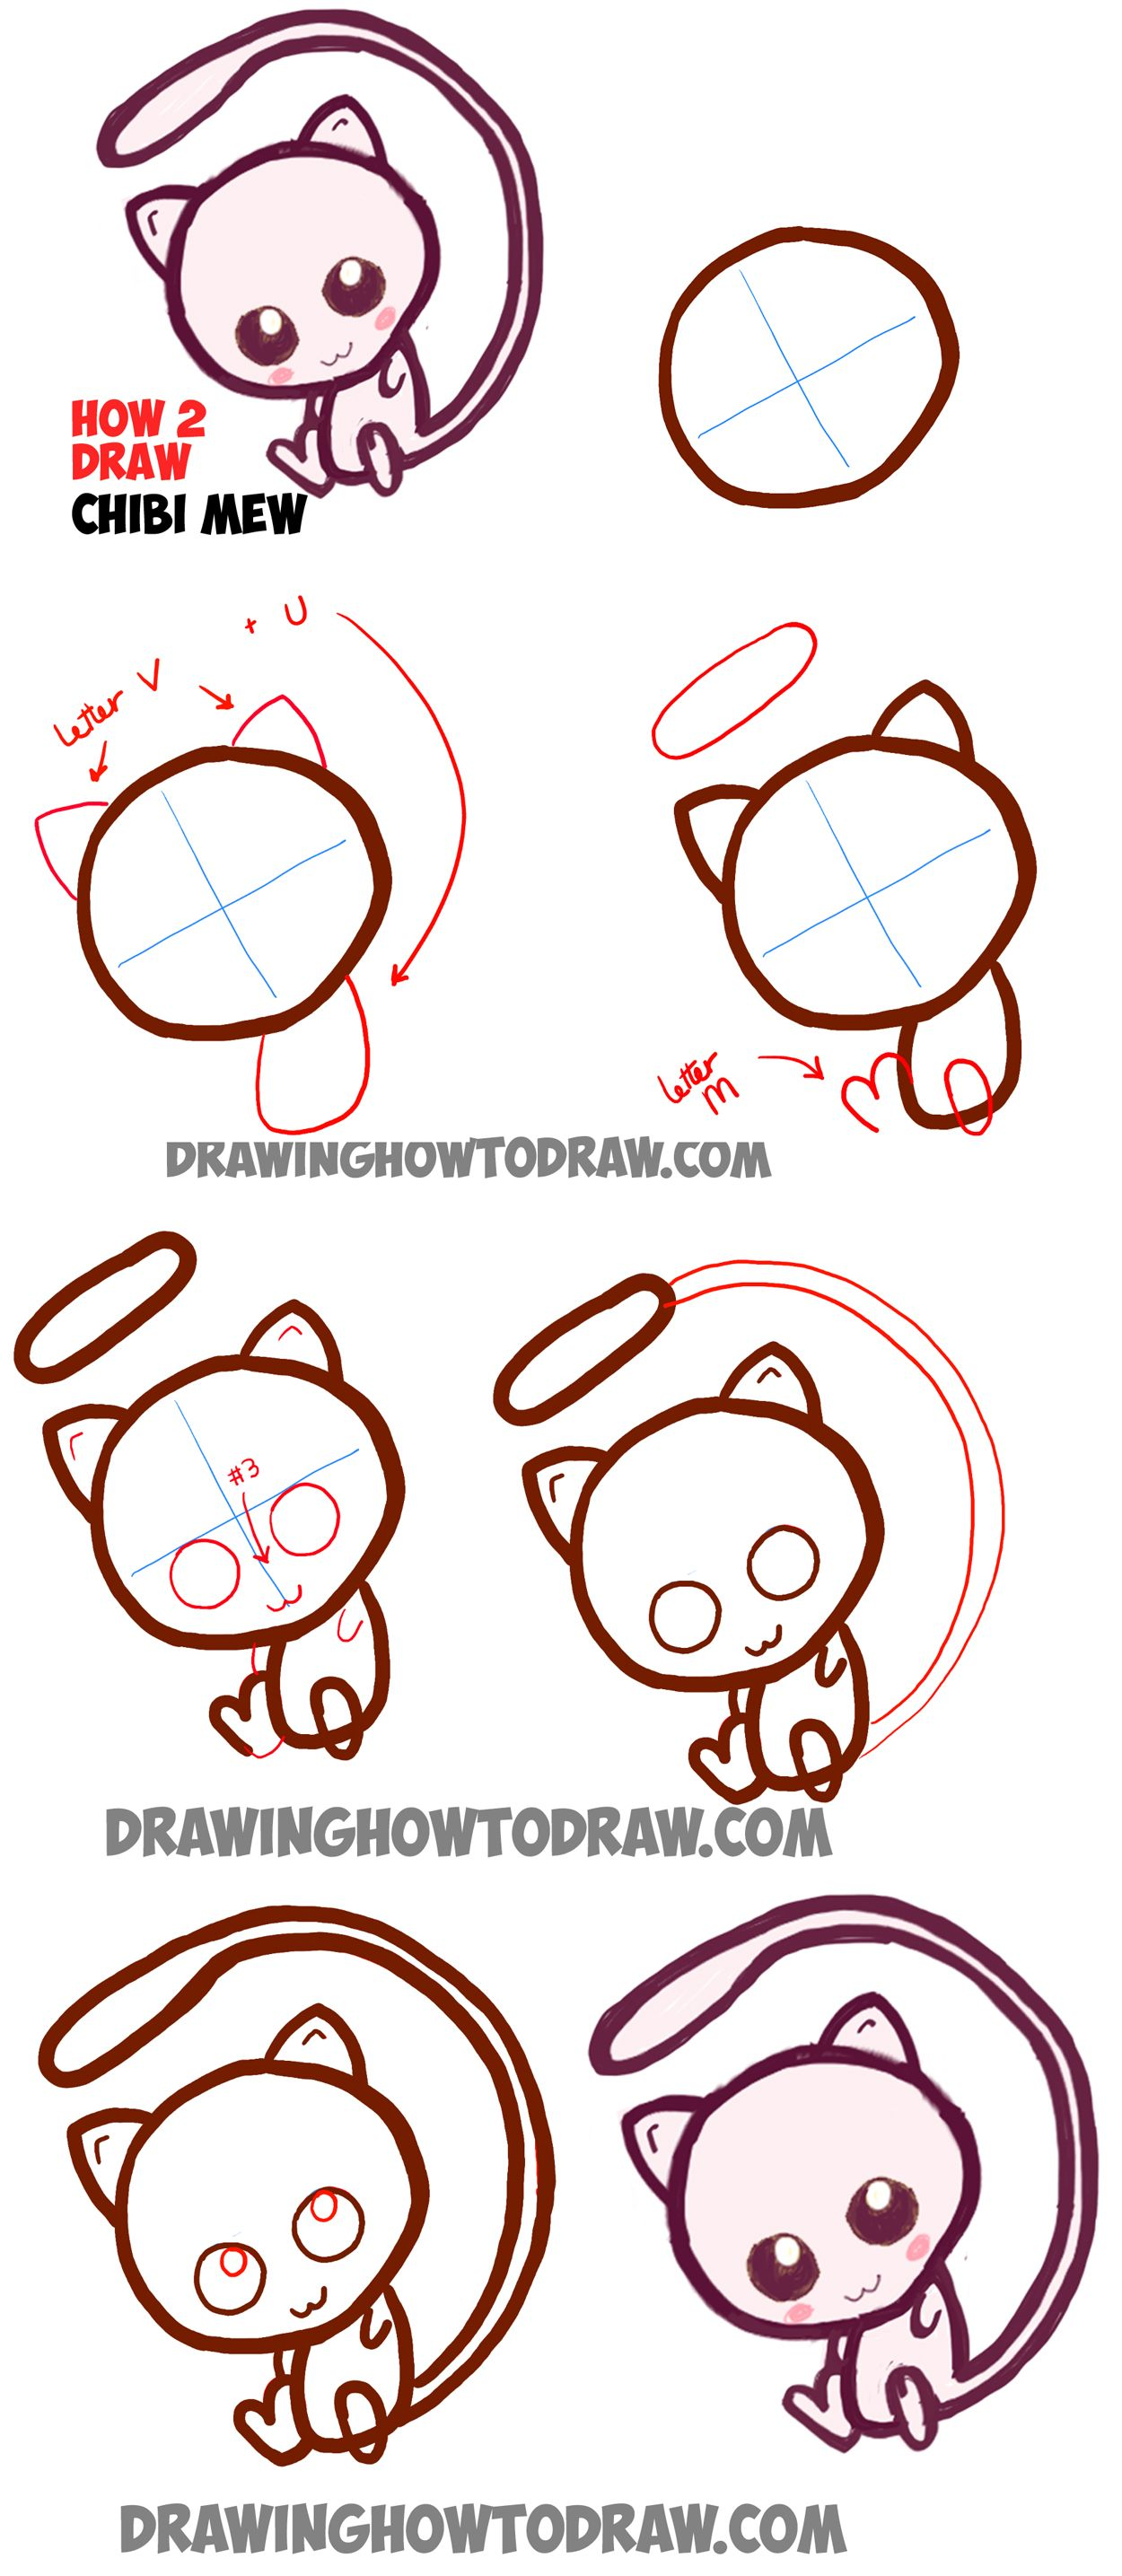 How To Draw Cute Baby Chibi Mew From Pokemon Easy Step By Step Drawing Tutorial How To Draw Step By Step Drawing Tutorials Kawaii Drawings Easy Drawings Pokemon Drawings